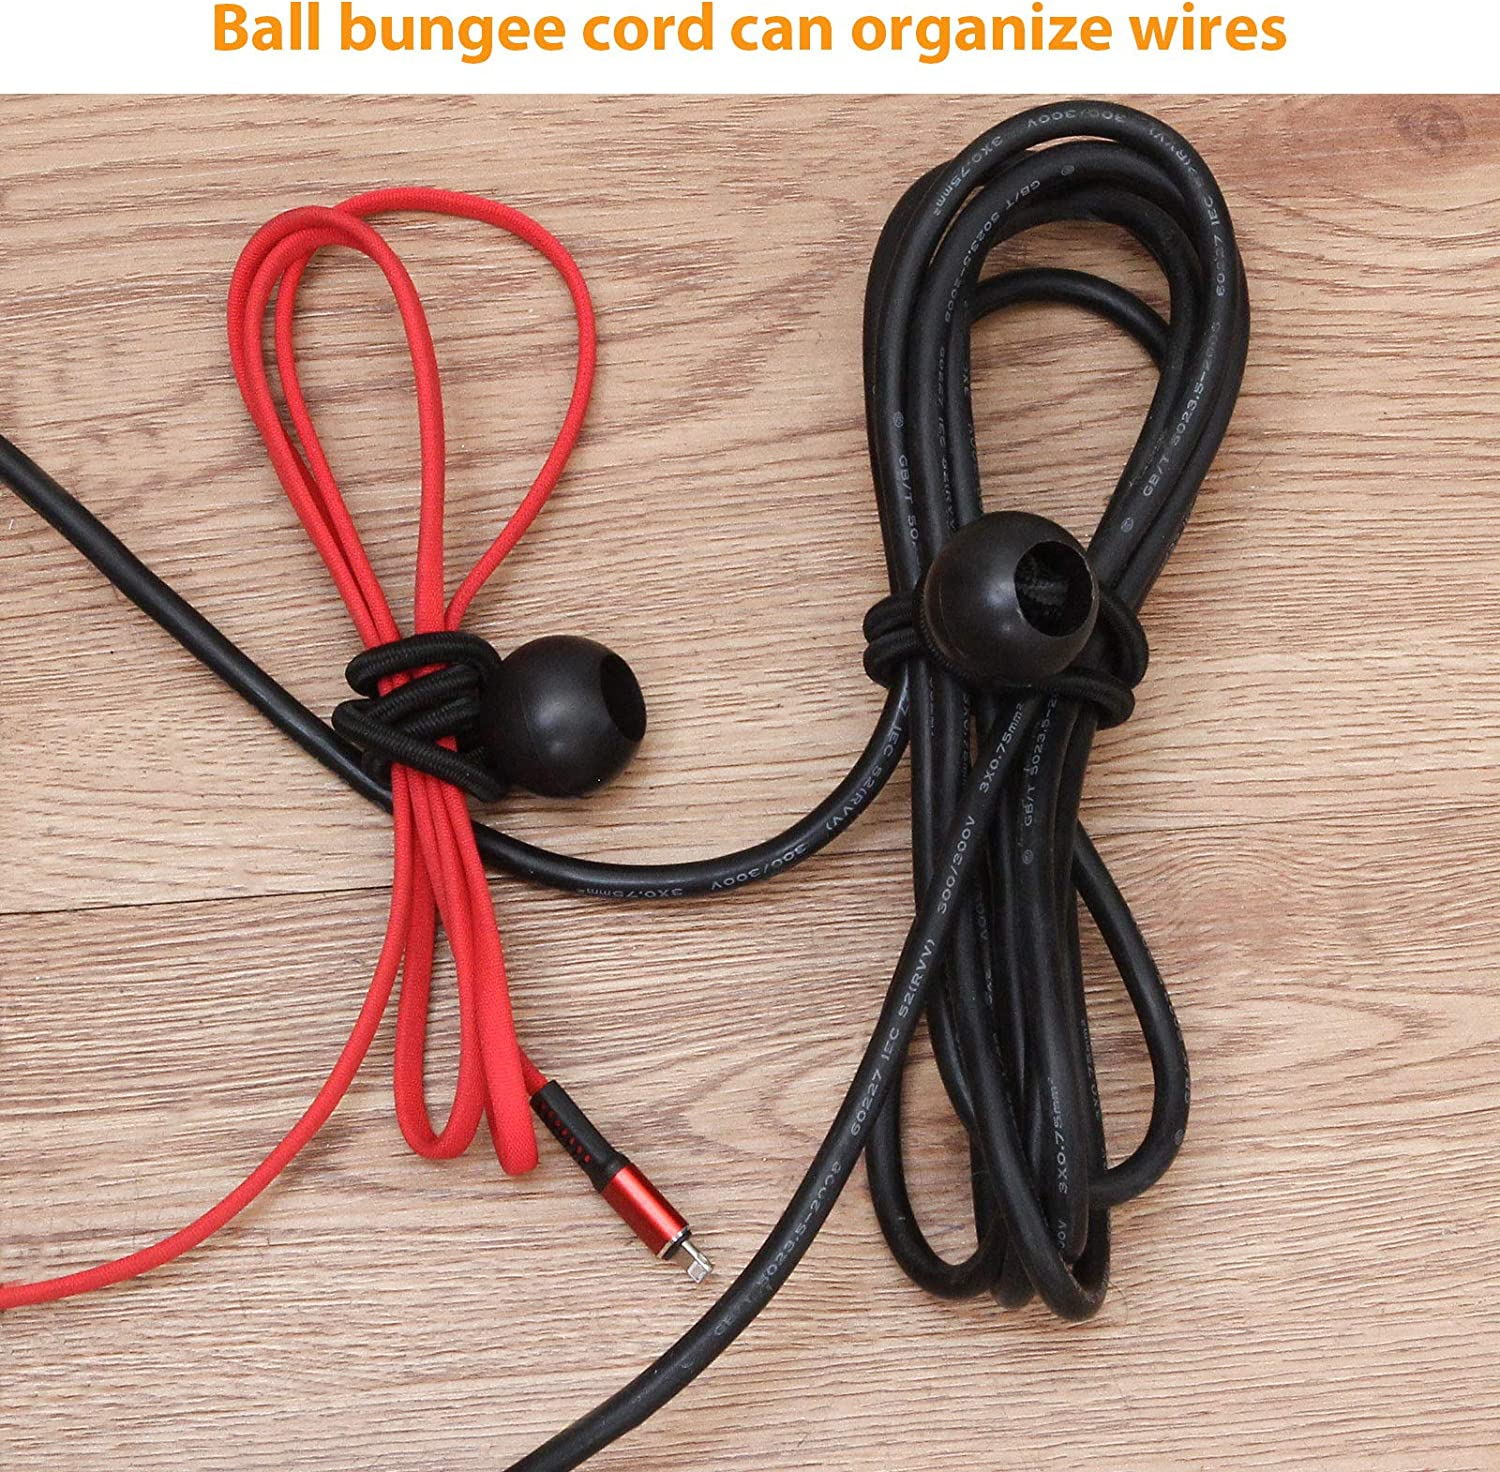 50 Pack 6 inch Ball Bungee Canopy Soccer Goals Bungee Cords with Balls Tarp Camping Childproofing Motor Homes Reusable Heavy Duty Tarp Bungee Cord for Projector Screen